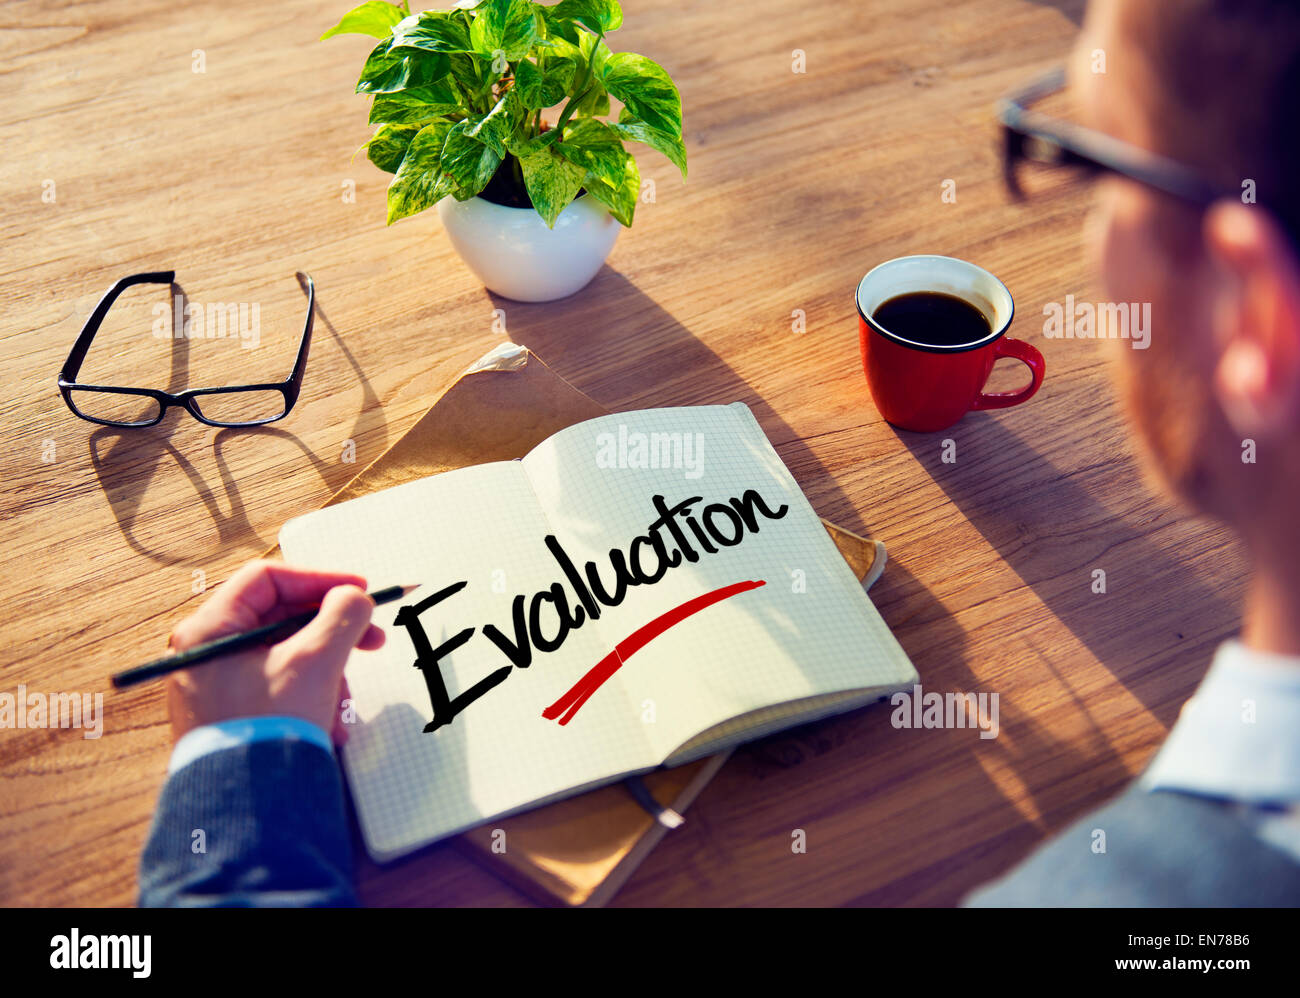 Man with Note Pad and Evaluation Concept - Stock Image